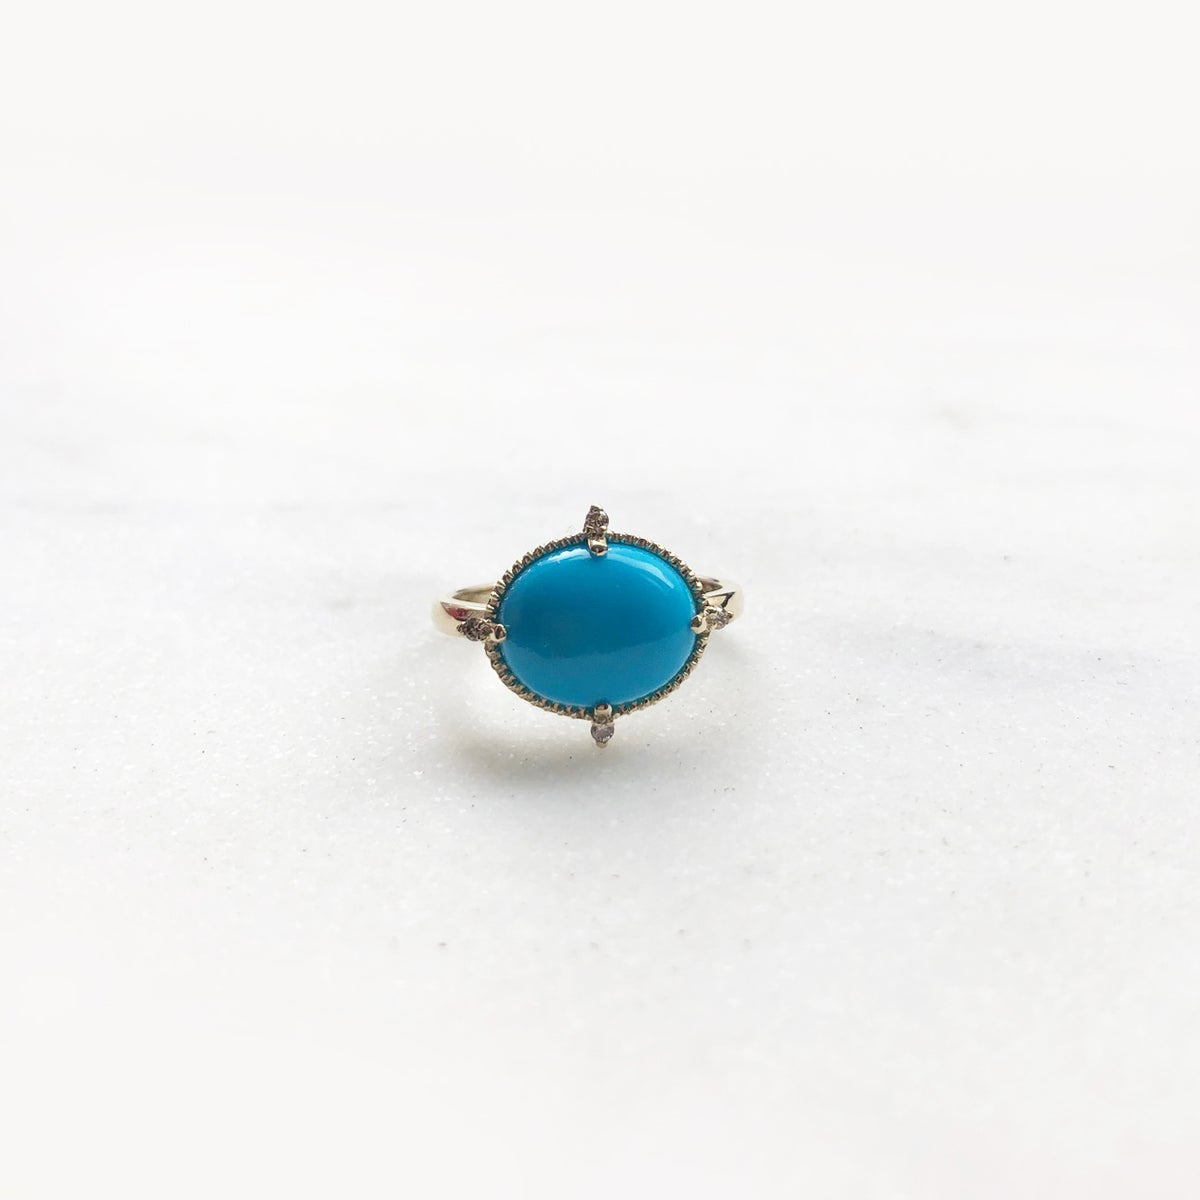 Image of Victorian Turquoise Cabochon Ring